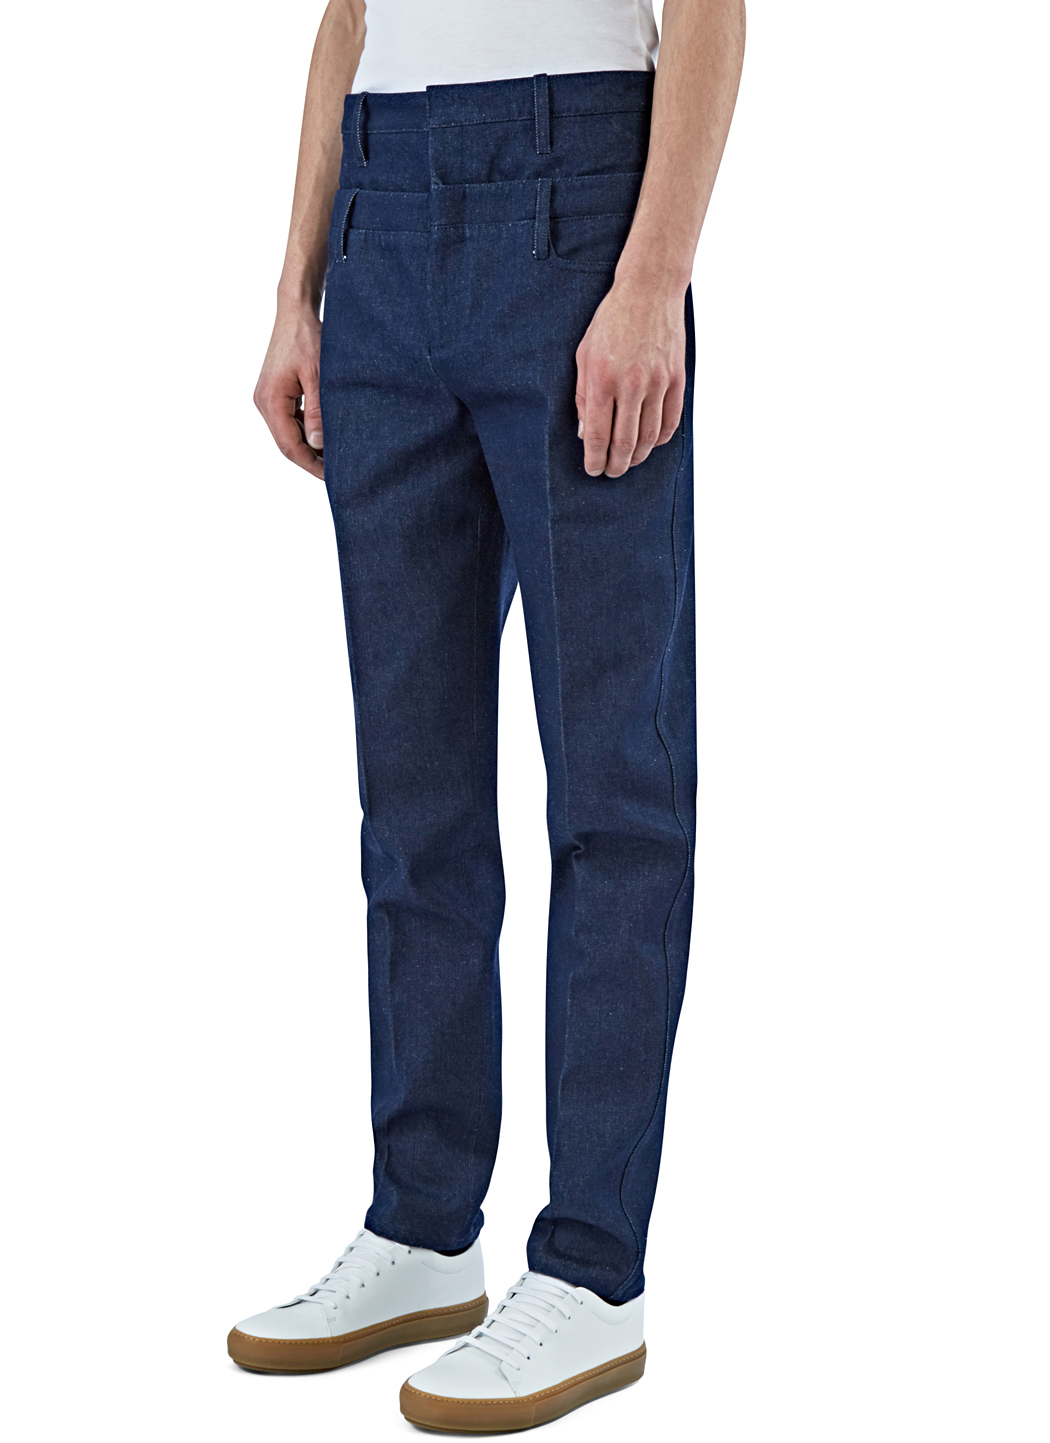 J.W.Anderson Jw Anderson - Printed Appliqué Straight Leg Jeans - Mens - Indigo Buy Cheap Manchester 2018 Newest Cheap Price Buy Cheap Cost Manchester Online Good Selling Sale Online P1n96UP1